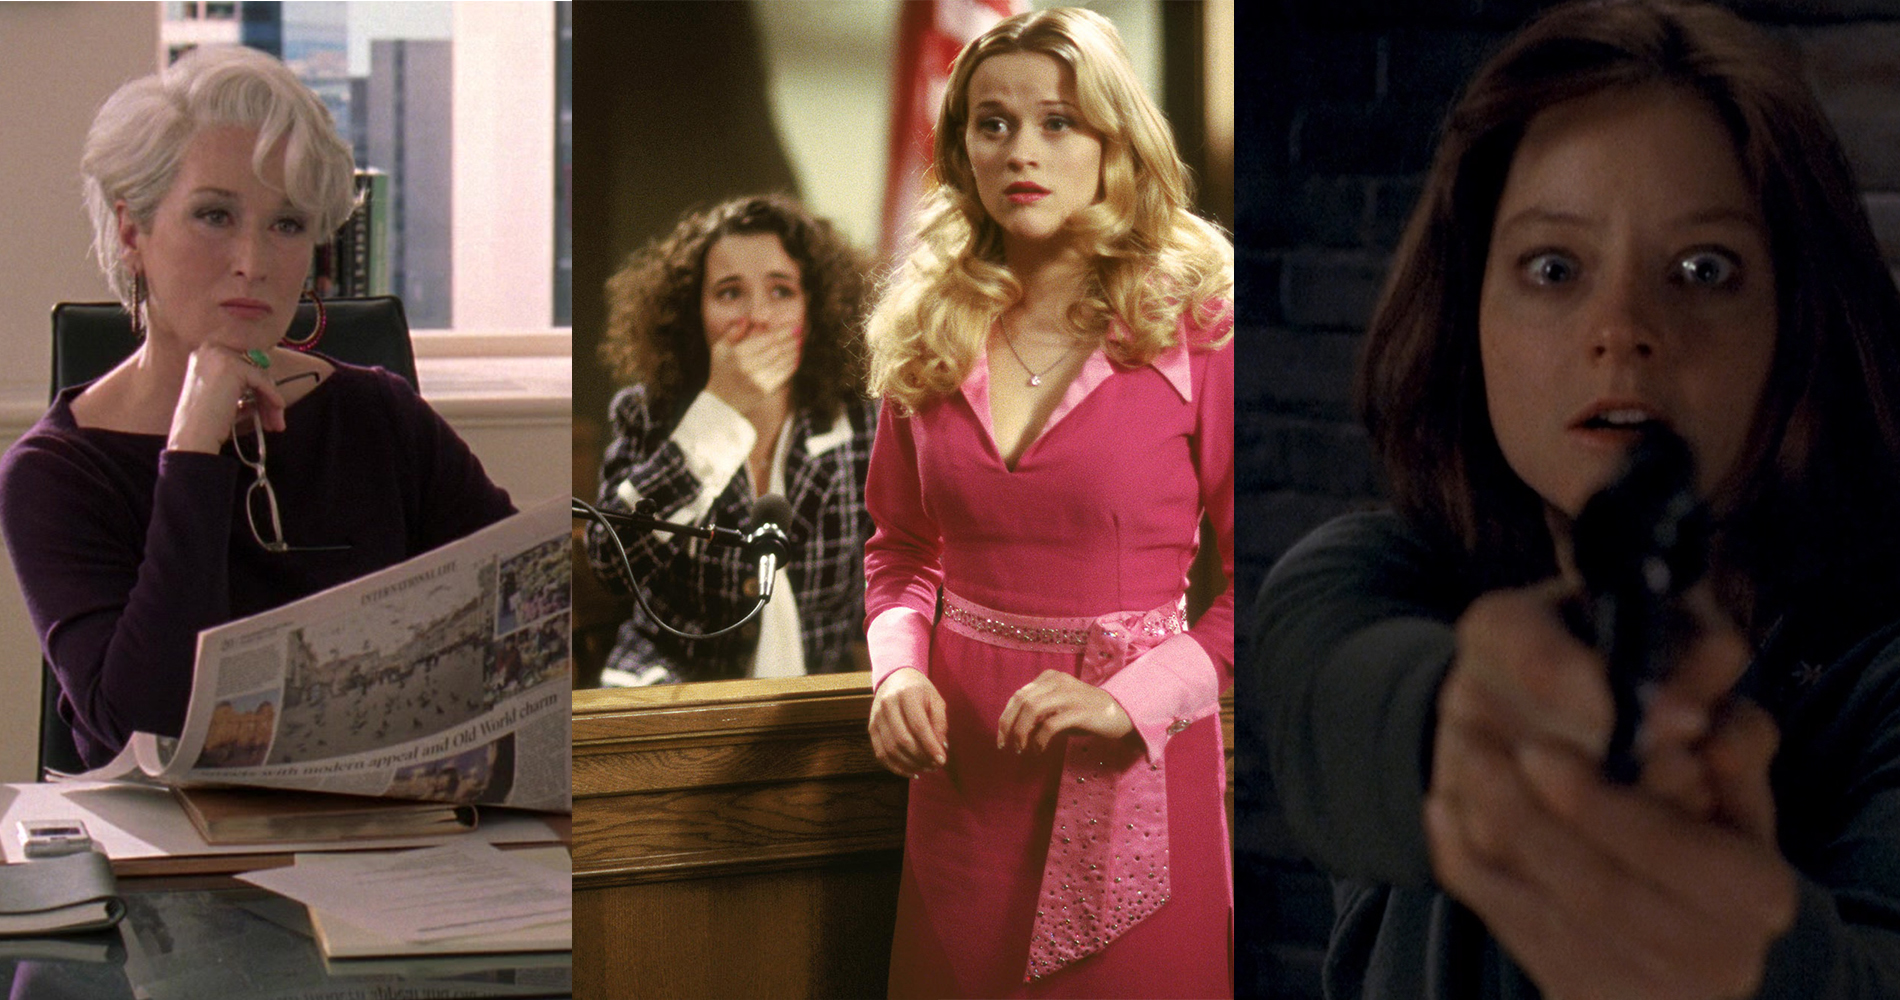 Fierce feminist icons of film